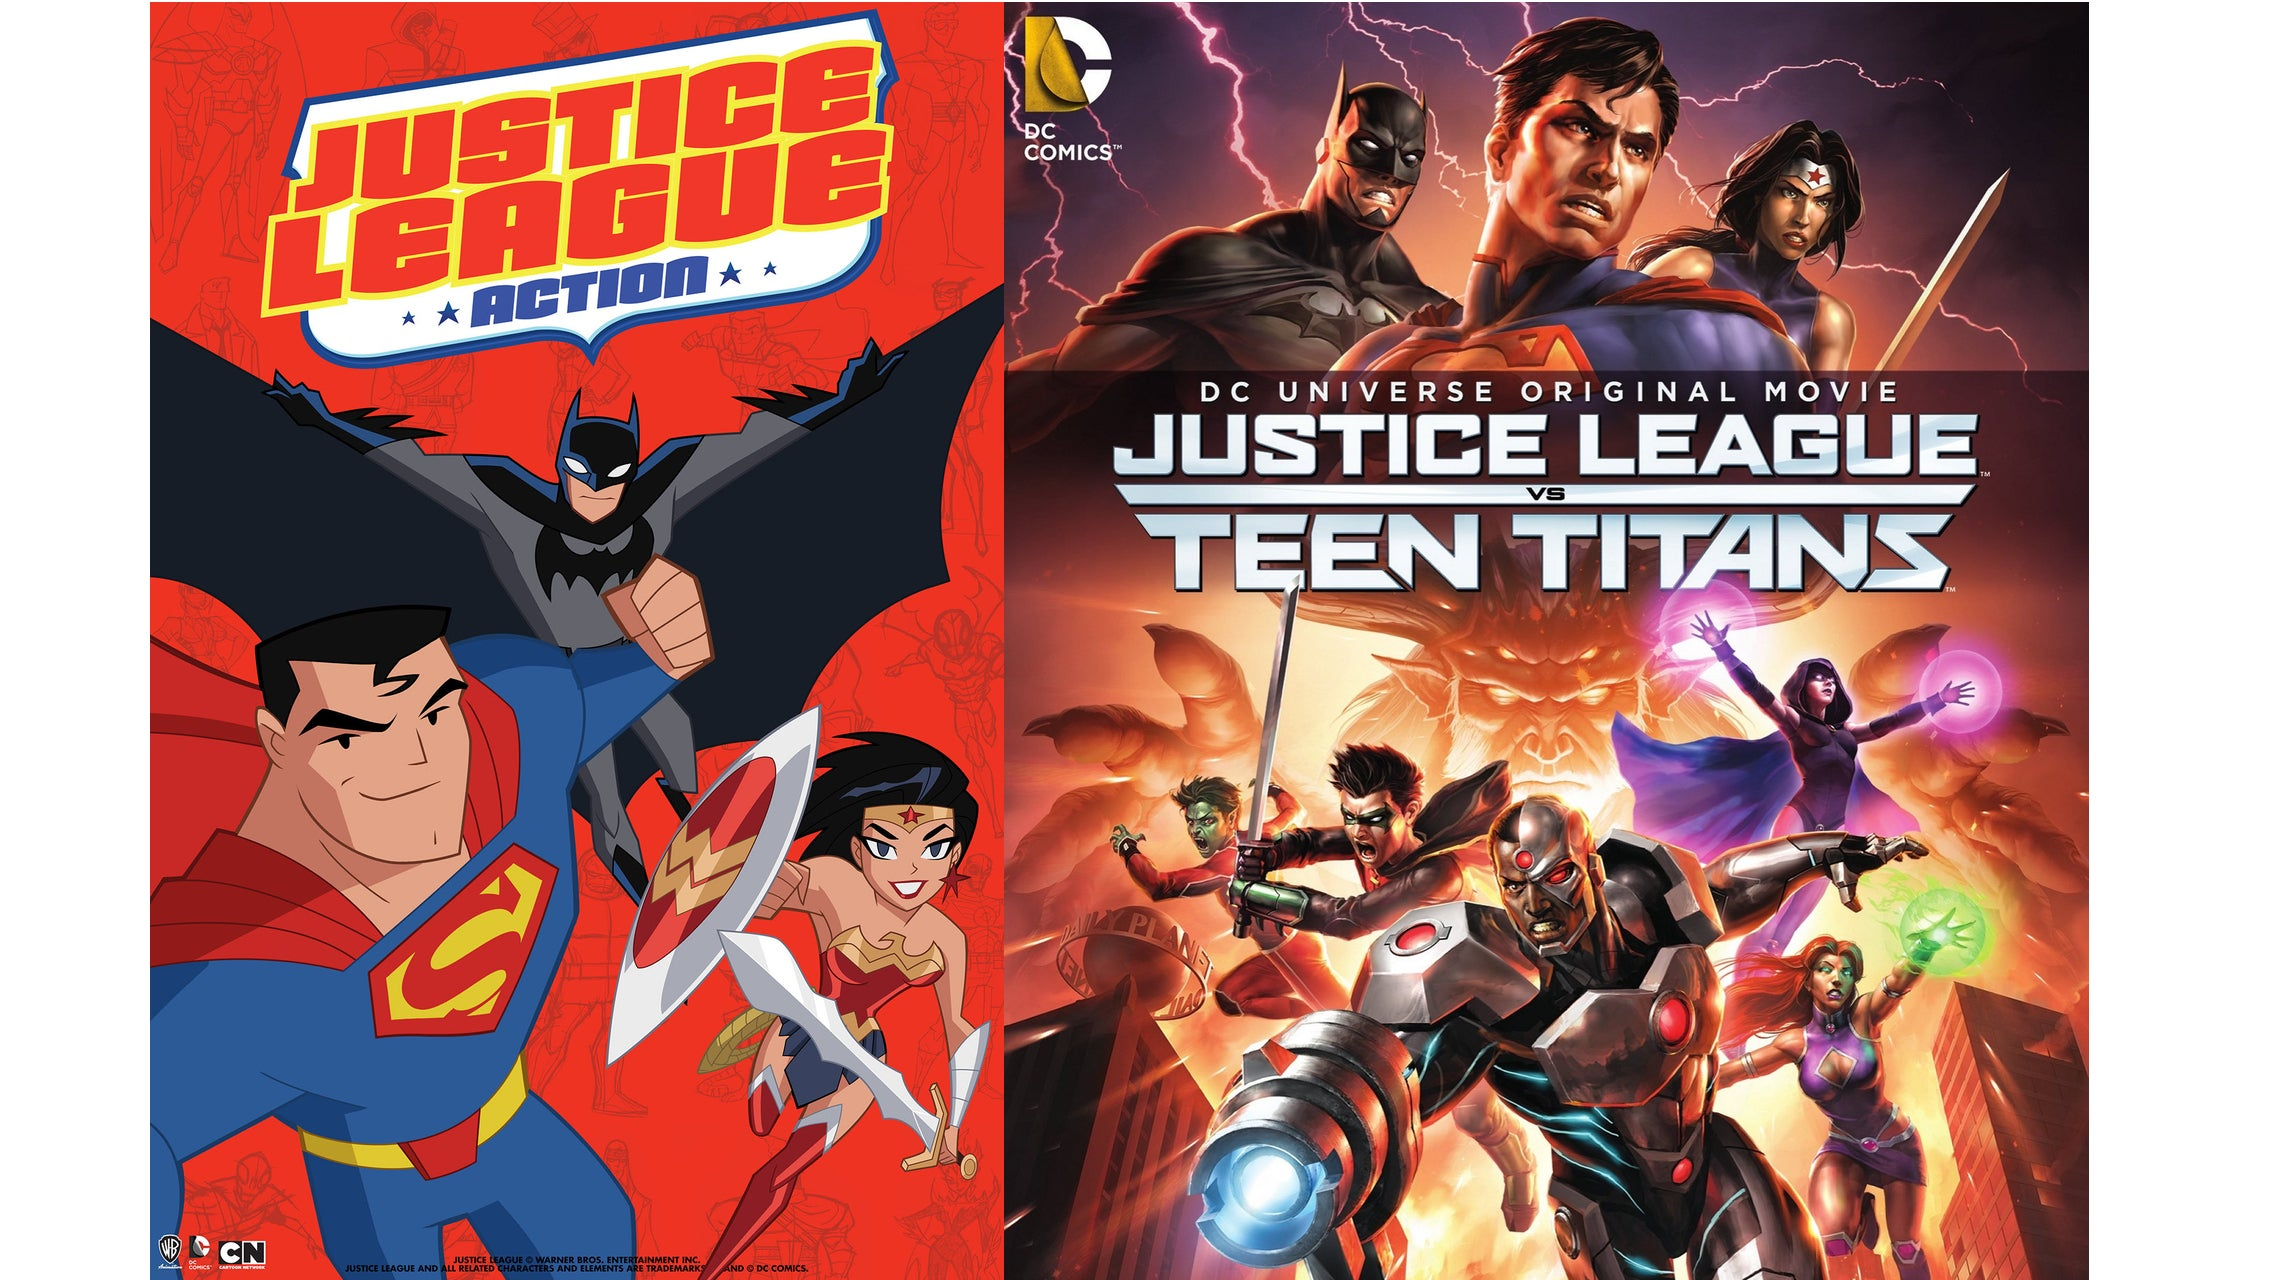 Two New Cartoon Versions of the Justice League Are Coming Soon